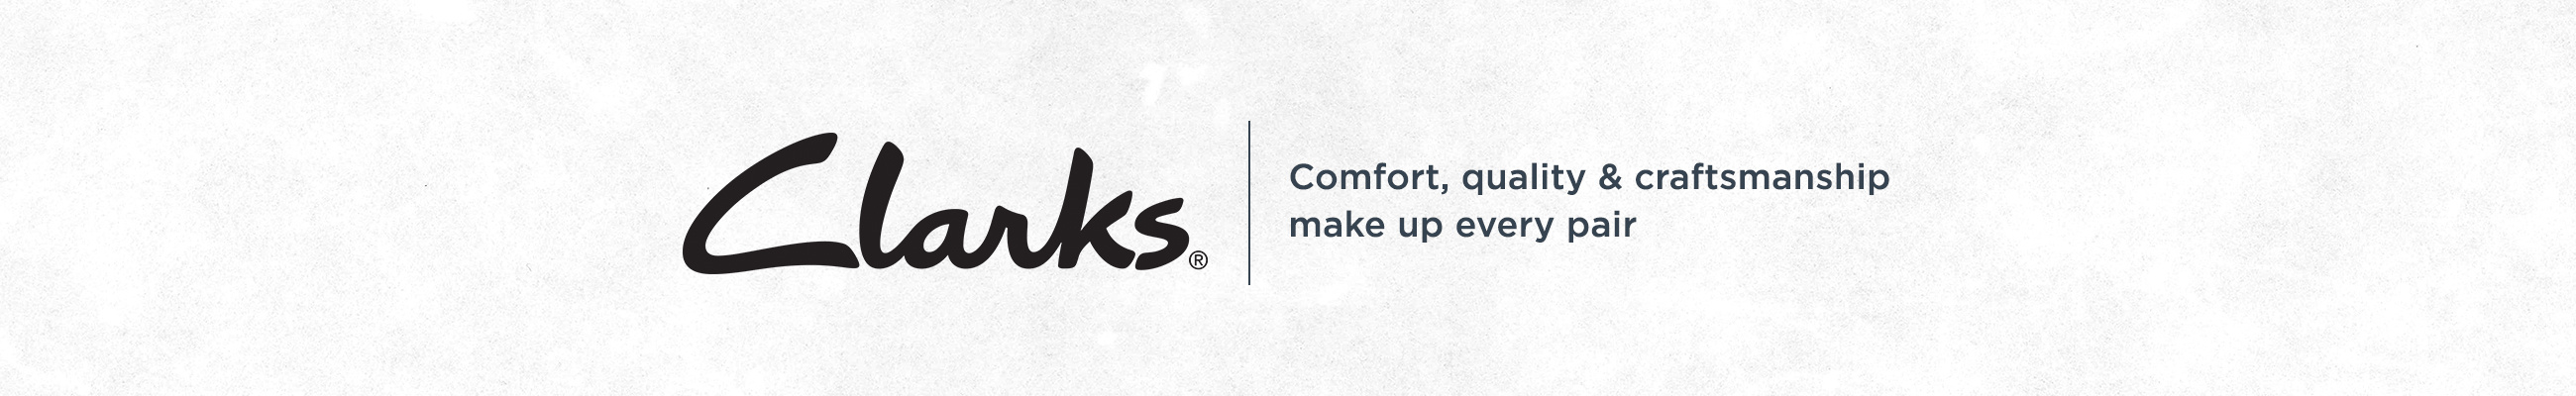 ... Clarks. Comfort, quality & craftsmanship make up every pair